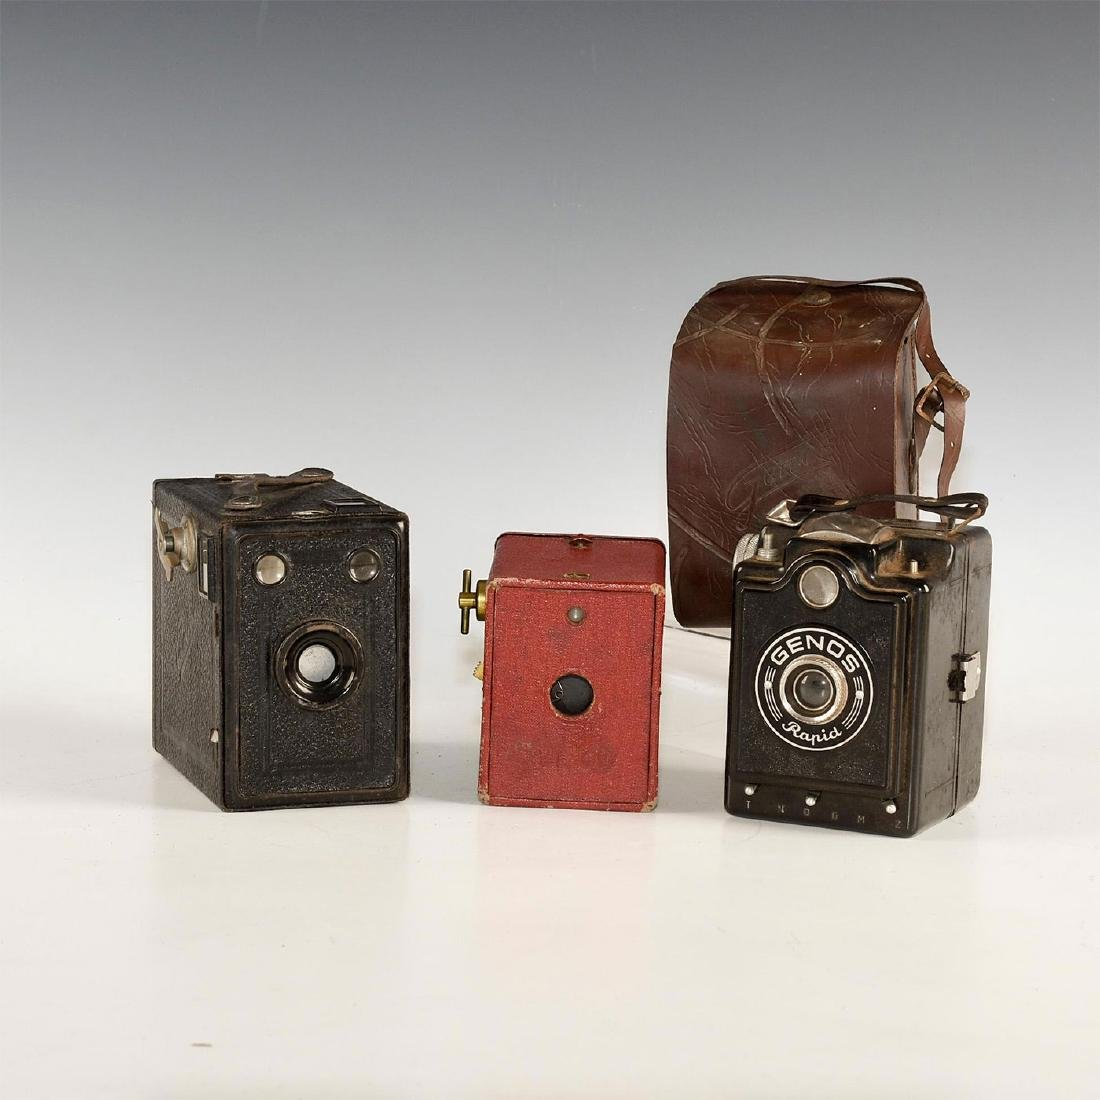 GROUP OF 3 VINTAGE BOX CAMERAS